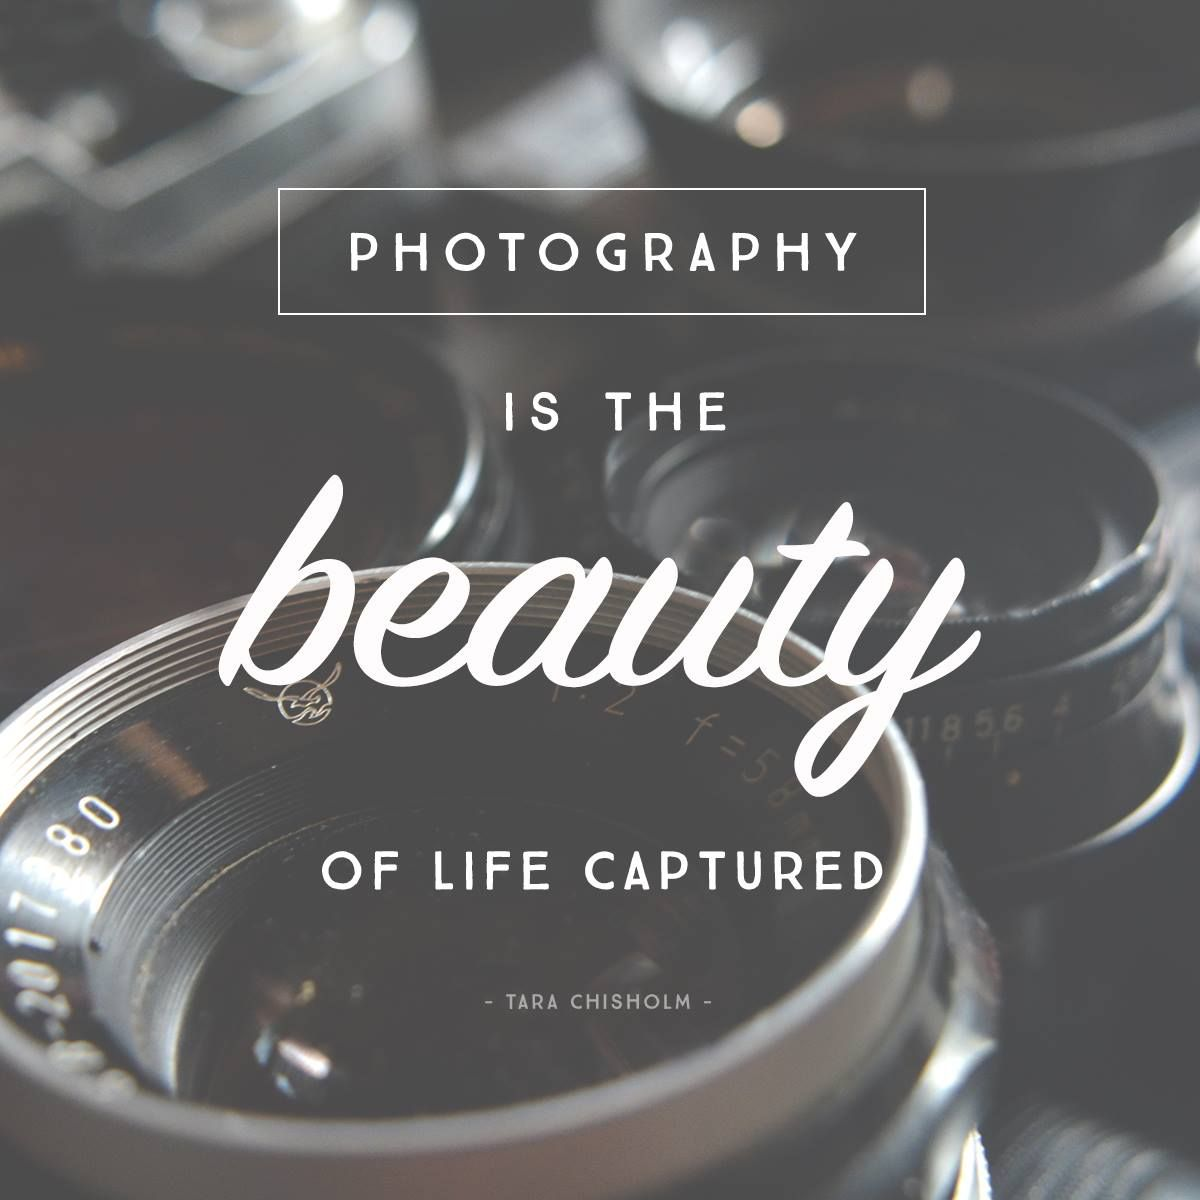 12 Quotes Inspire Photography Journey   Pinterest   Photography     12 Quotes to Inspire your Photography Journey    Photography is the beauty  of life captured      Tara Chisholm